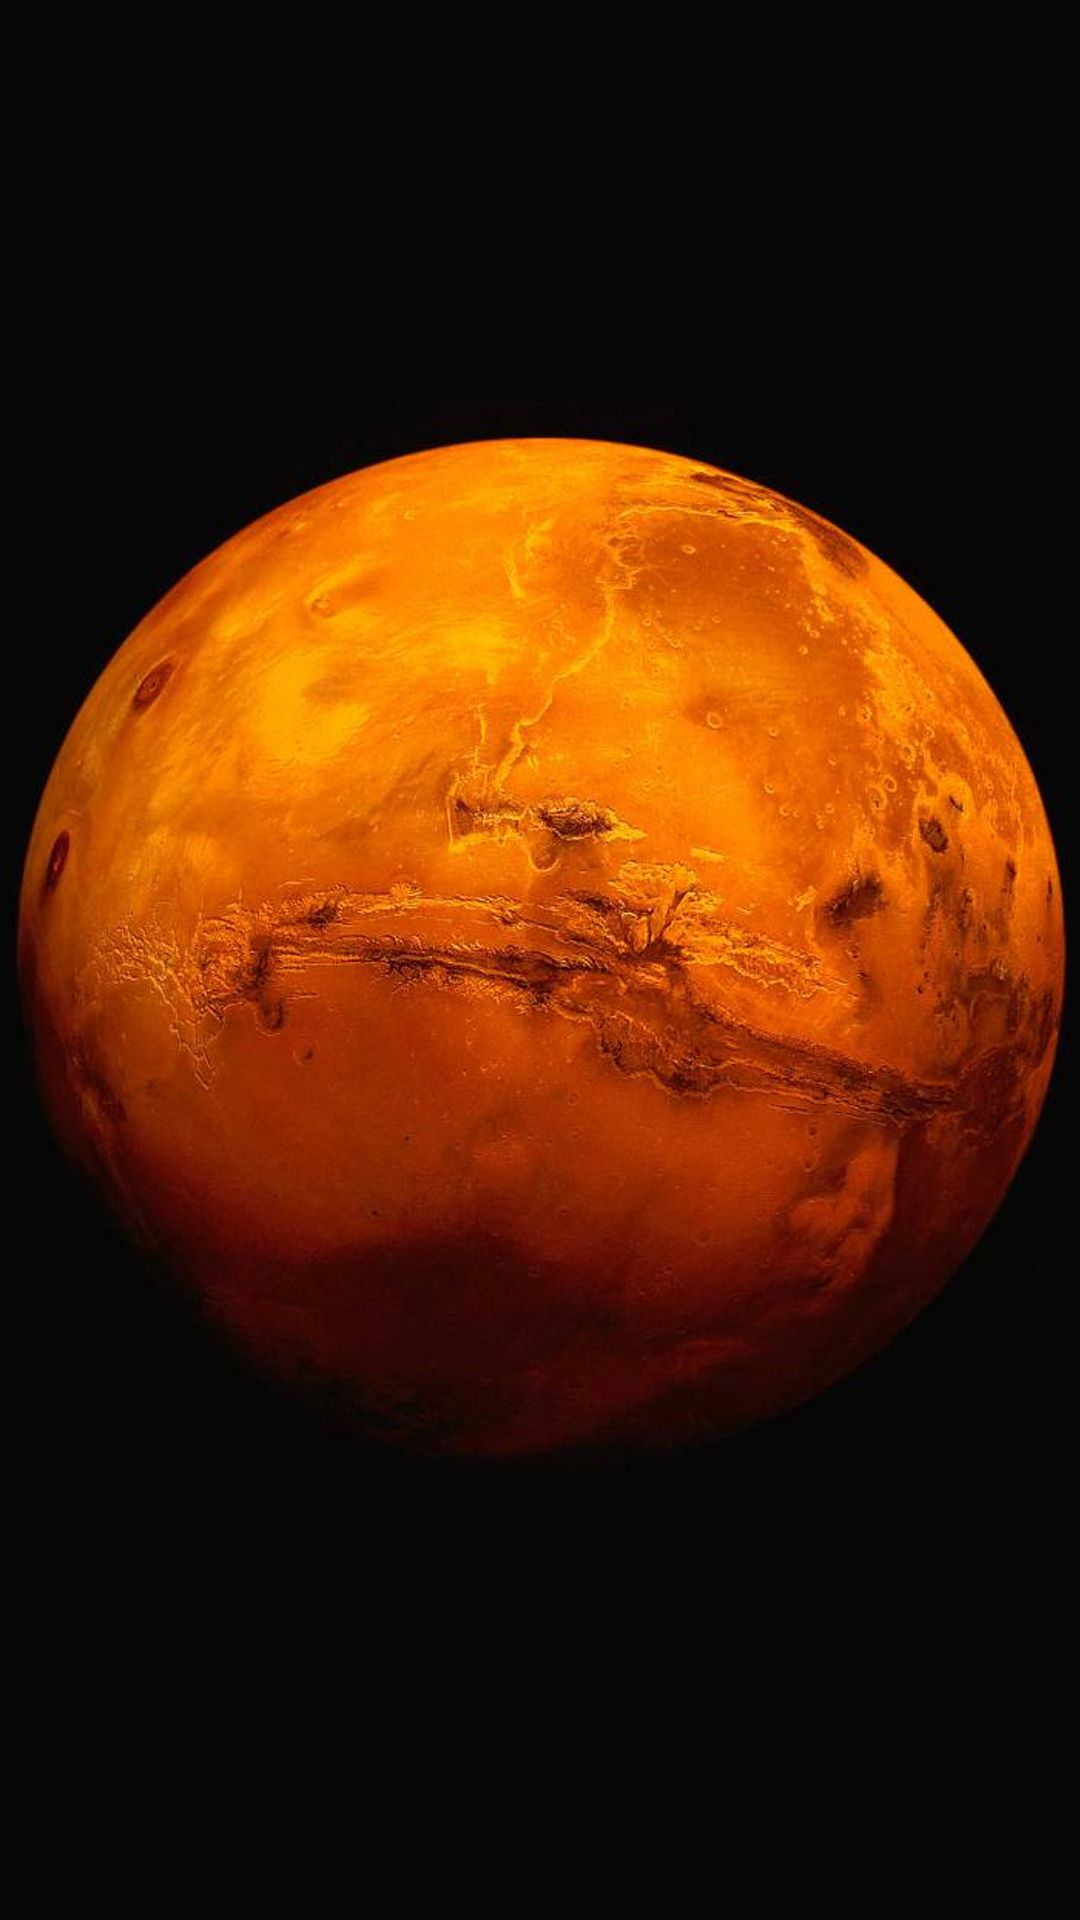 Mars Planet Full View Iphone 6 Hd Wallpaper Iphone Wallpapers